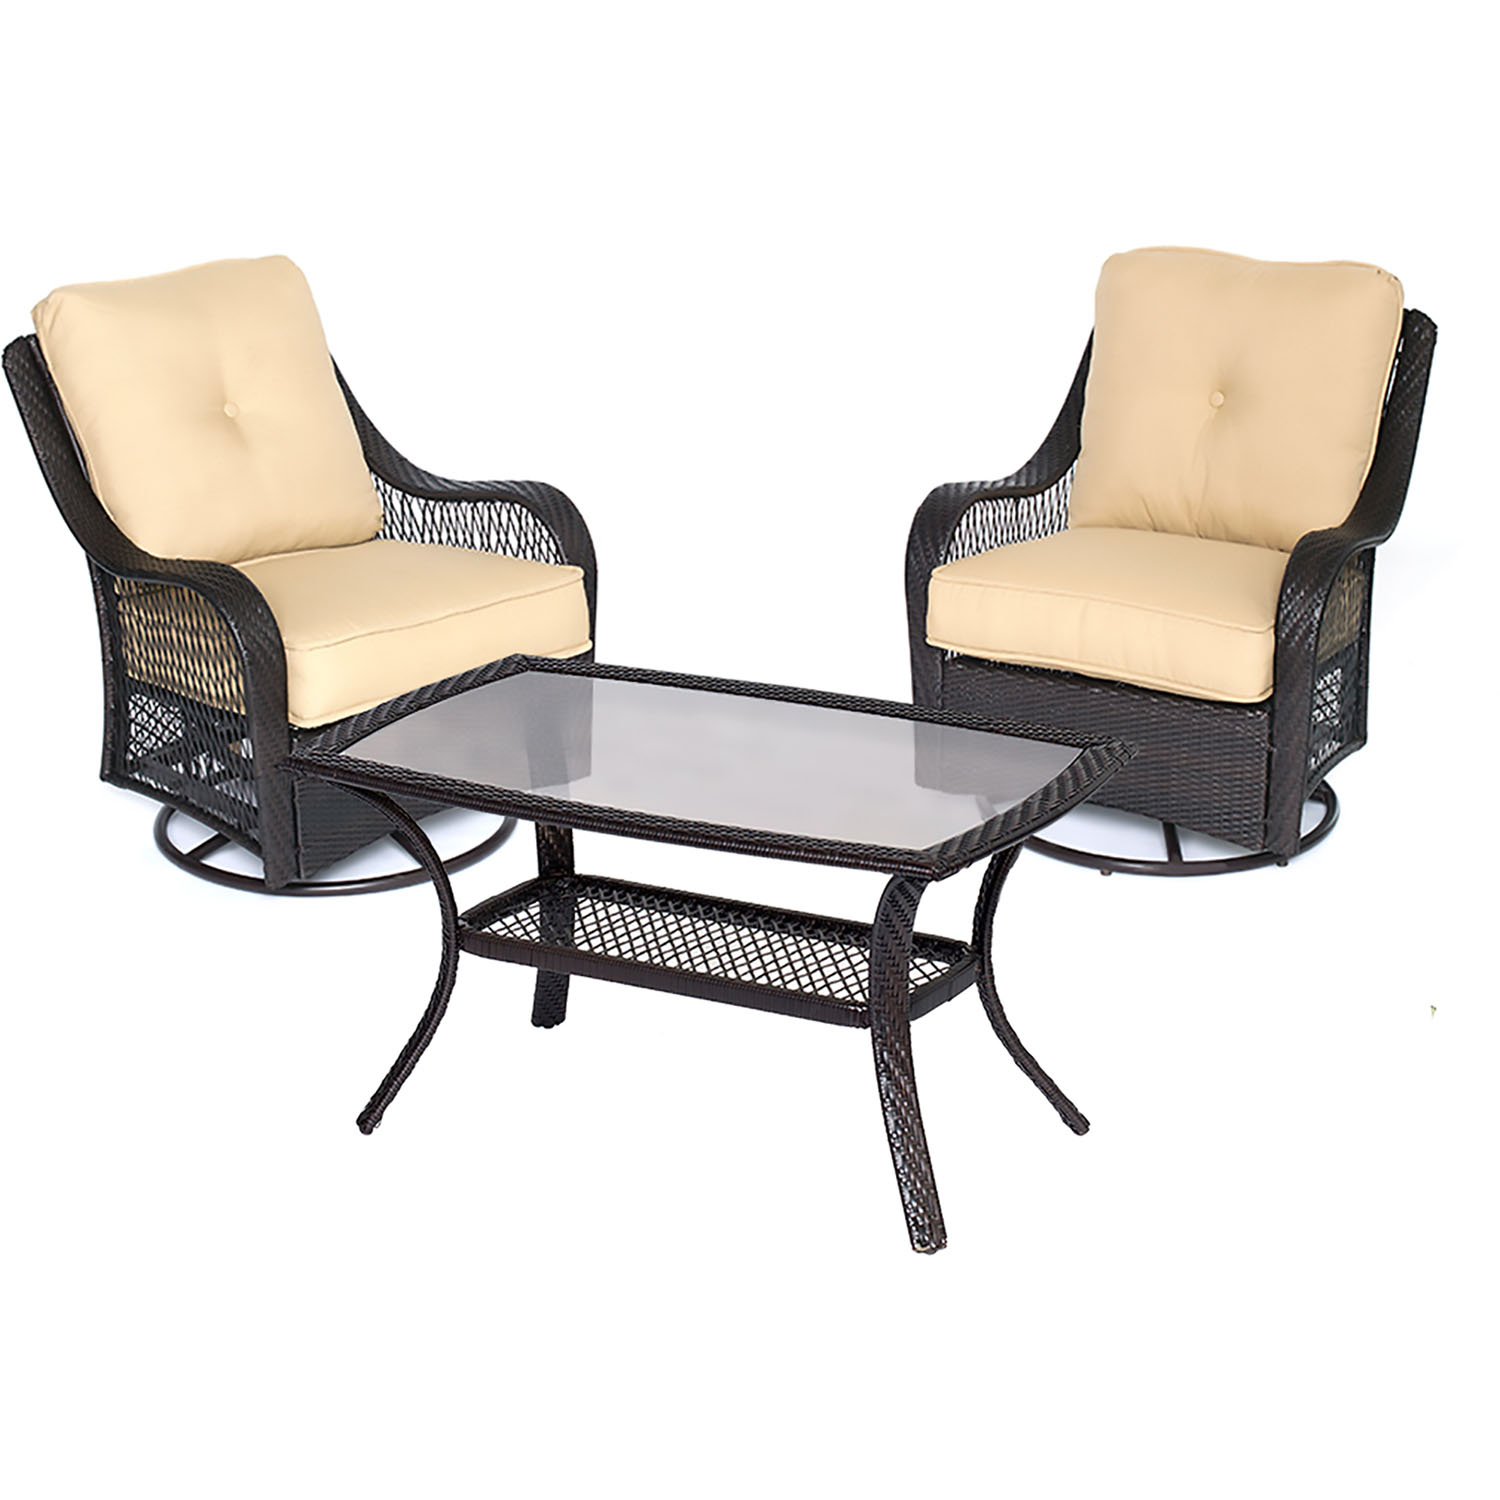 Orleans 3PC Patio Chat Set in Sahara Sand - ORLEANS3PCSWCT ...